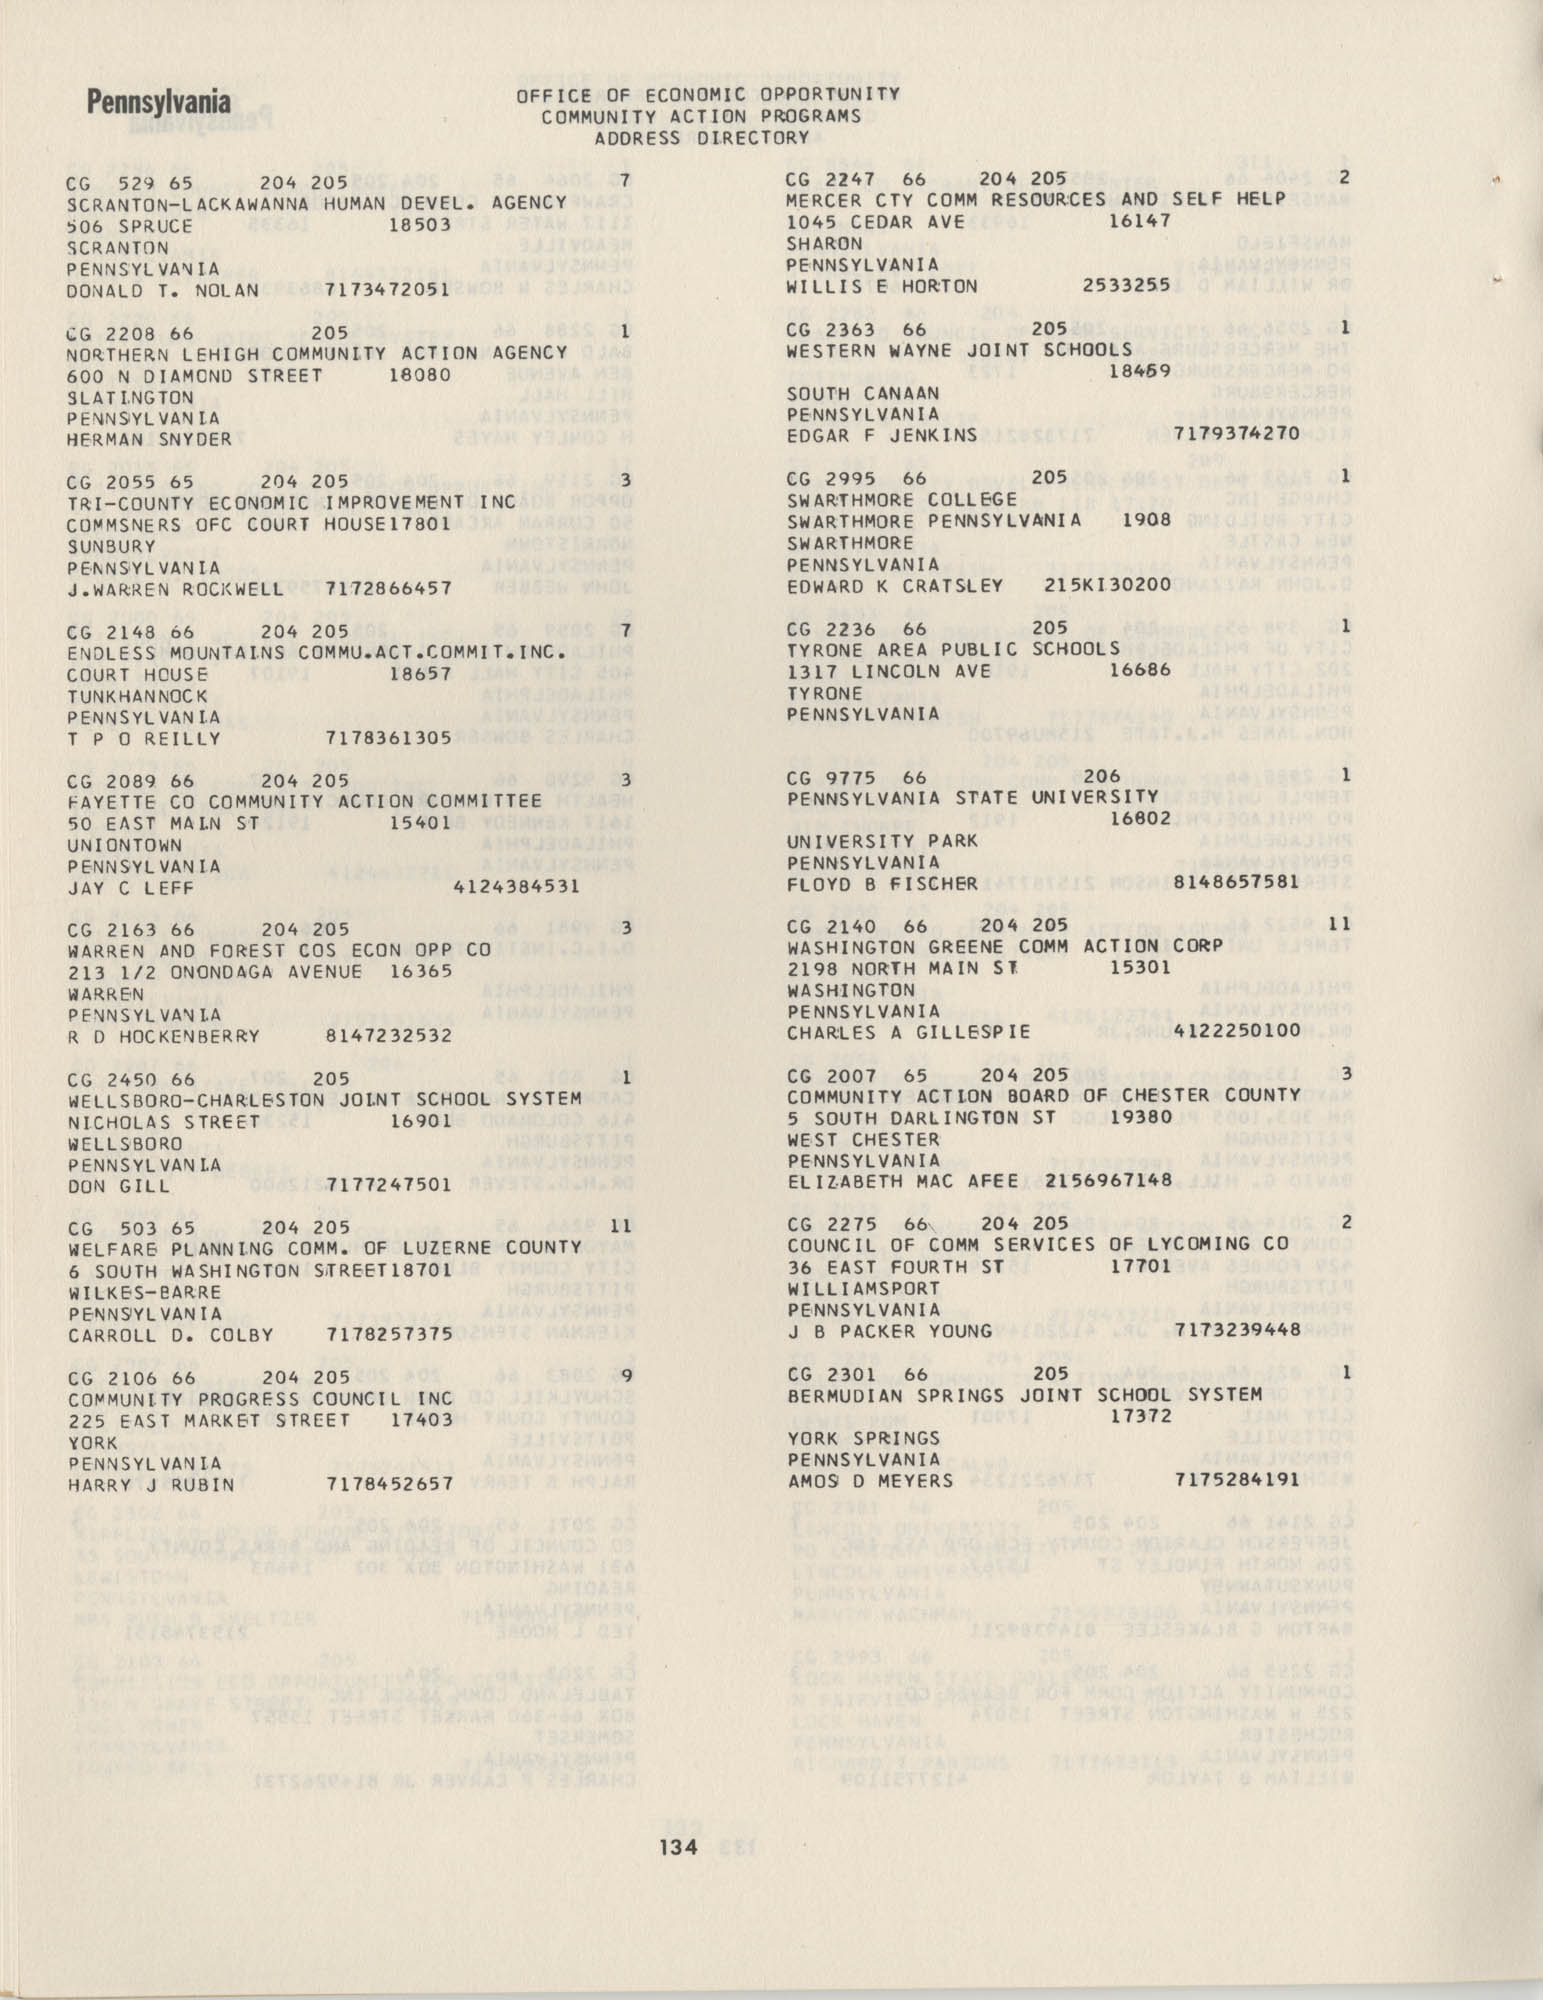 Community Action Programs Directory, June 15, 1966, Page 134